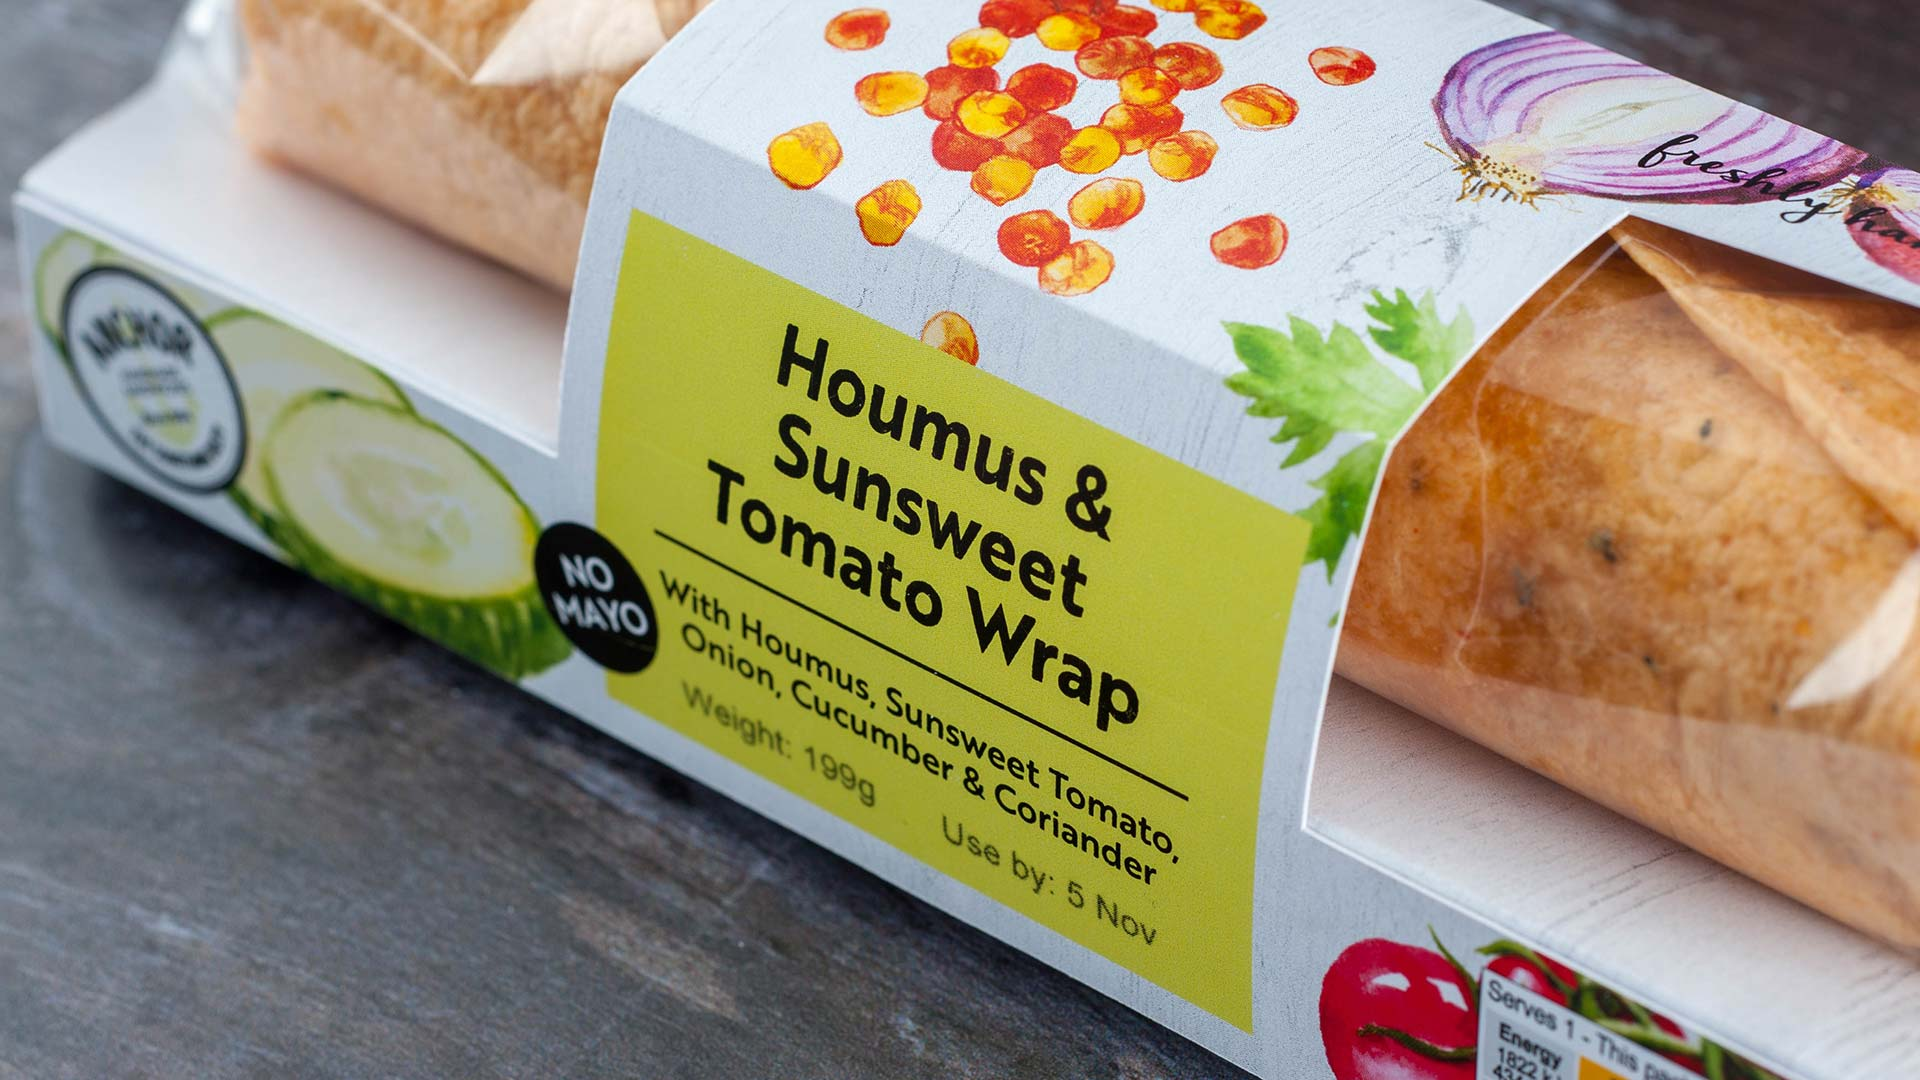 Food Packaging Designers Create Clear Branding and Product Descriptions